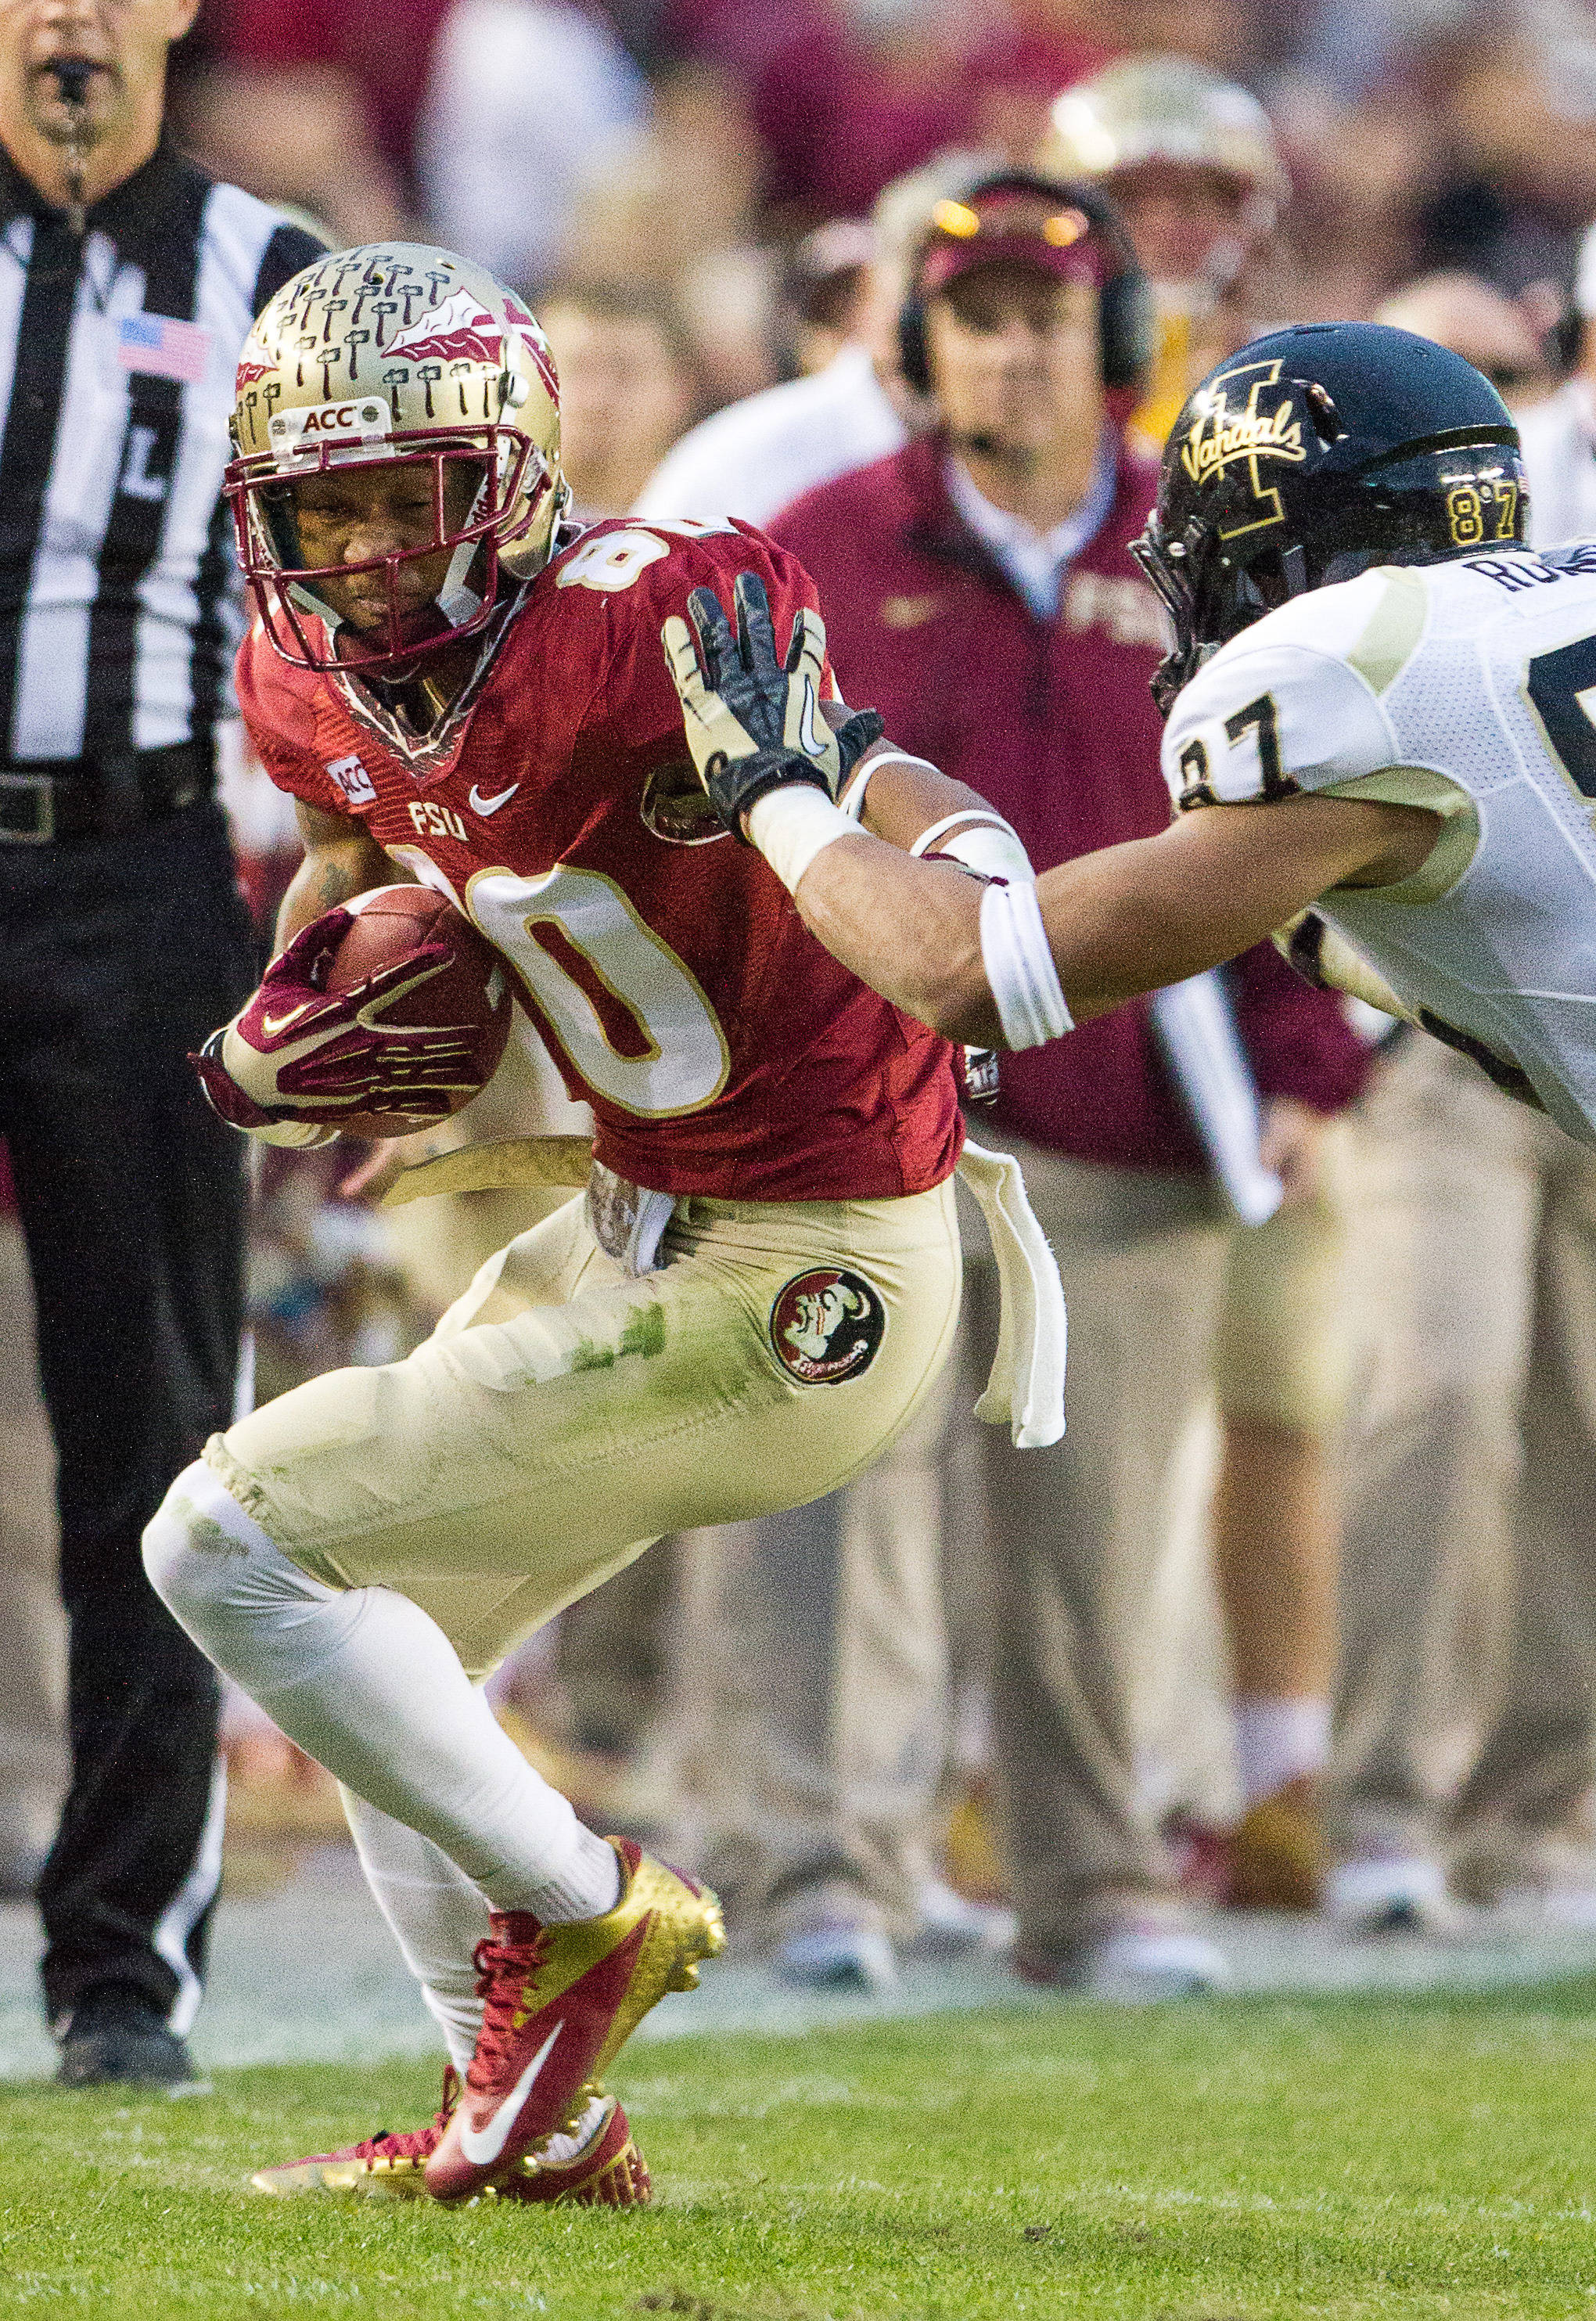 Rashad Greene (80) pushes a defender while carrying the ball during FSU Football's 80-14 victory over Idaho in Tallahassee, Fla on Saturday, November 23, 2013. Photos by Mike Schwarz.